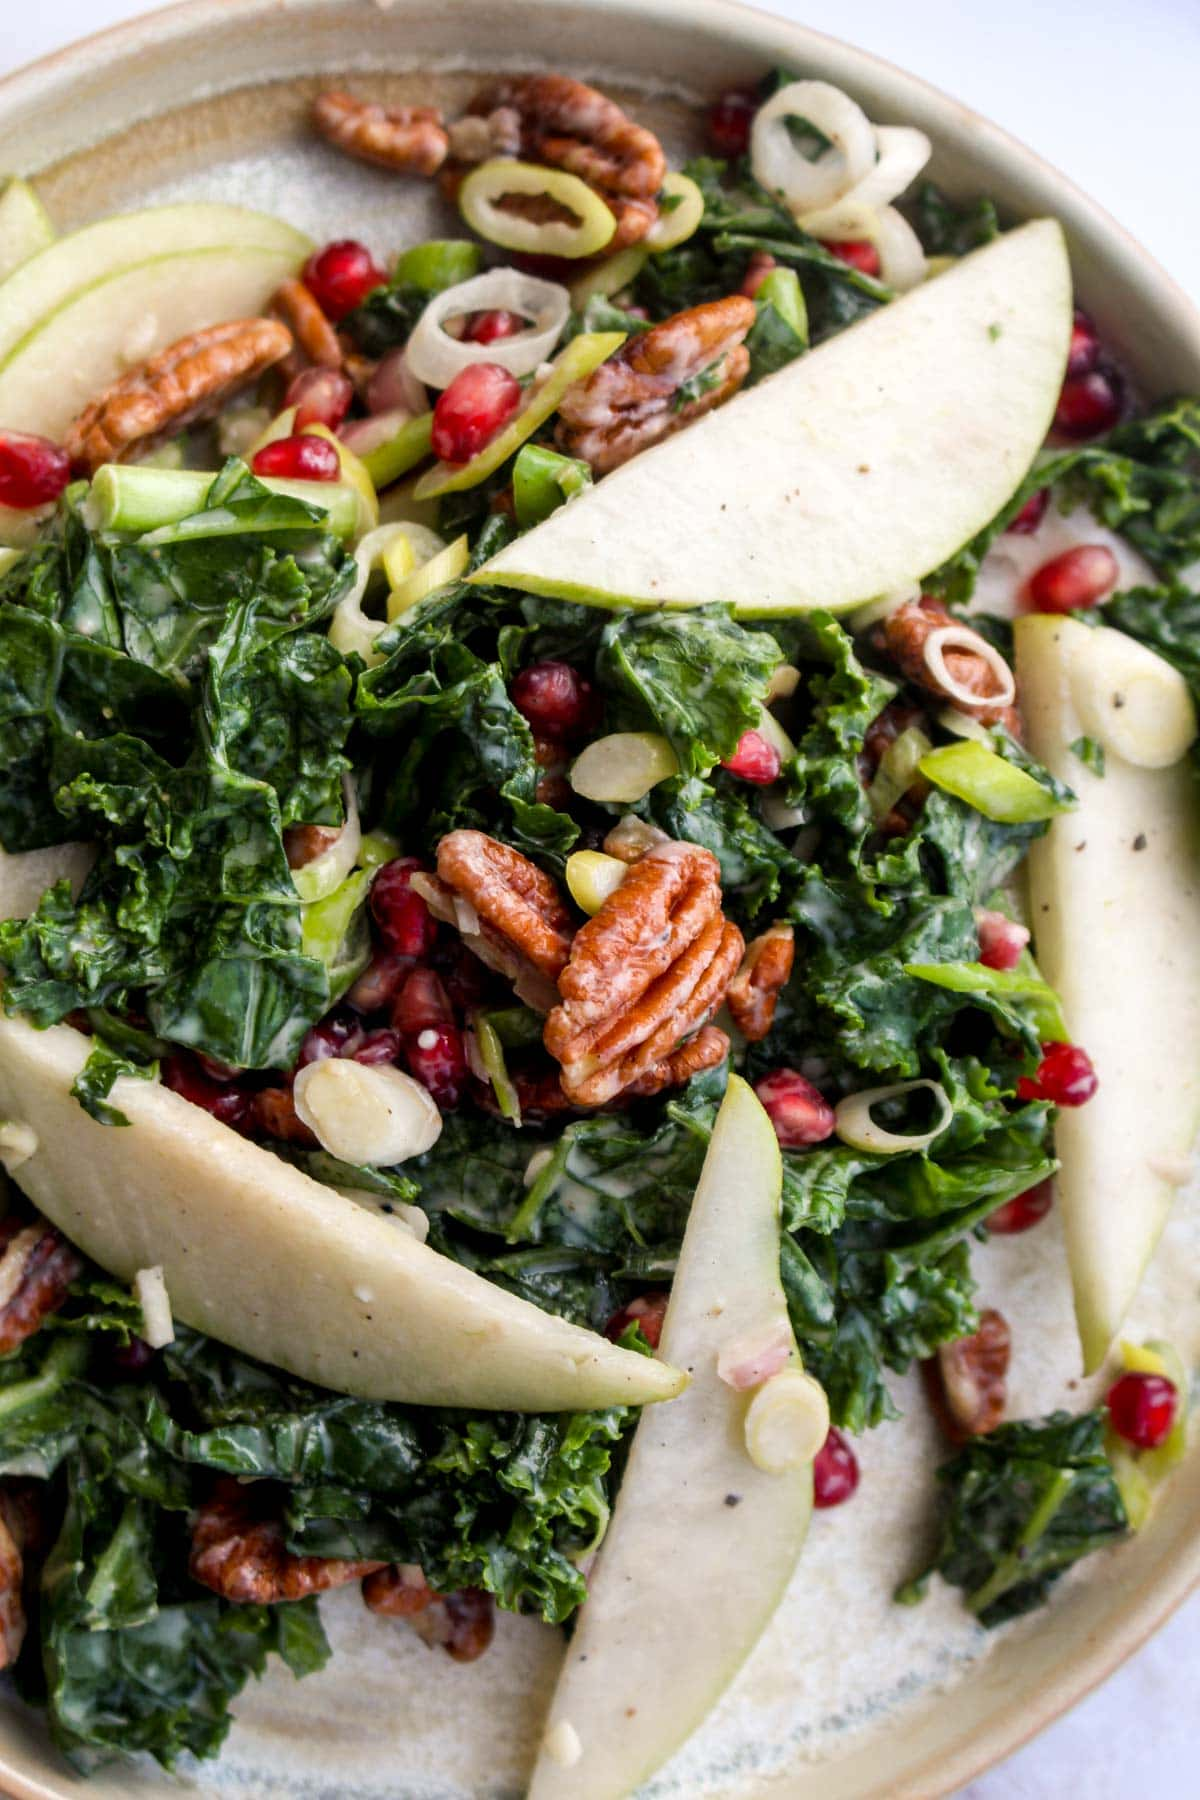 A close up of winter kale salad with pears and pecans.